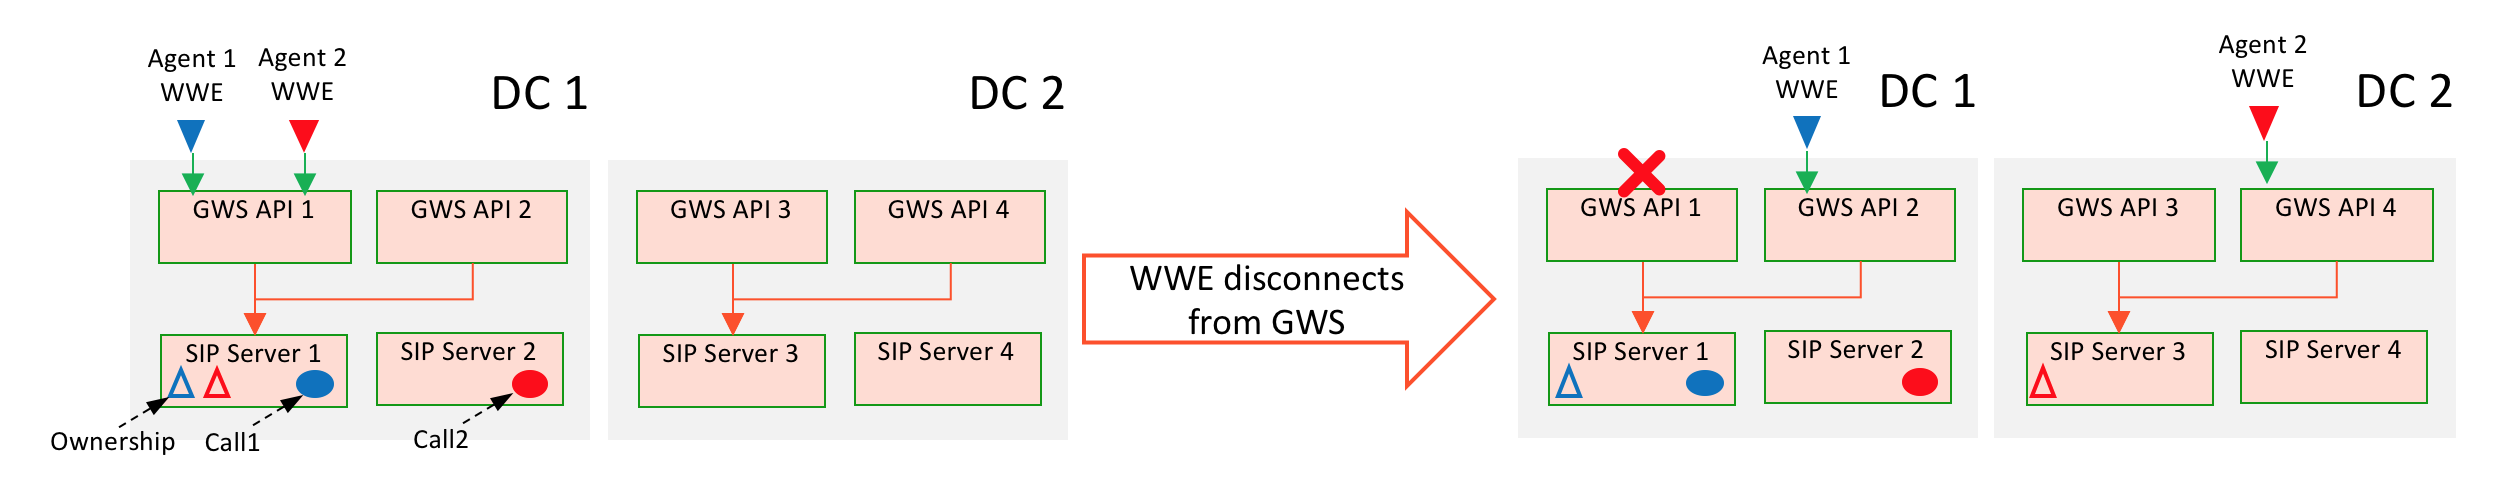 Gws sipcluster dr wwe reconnects to new GWS.png